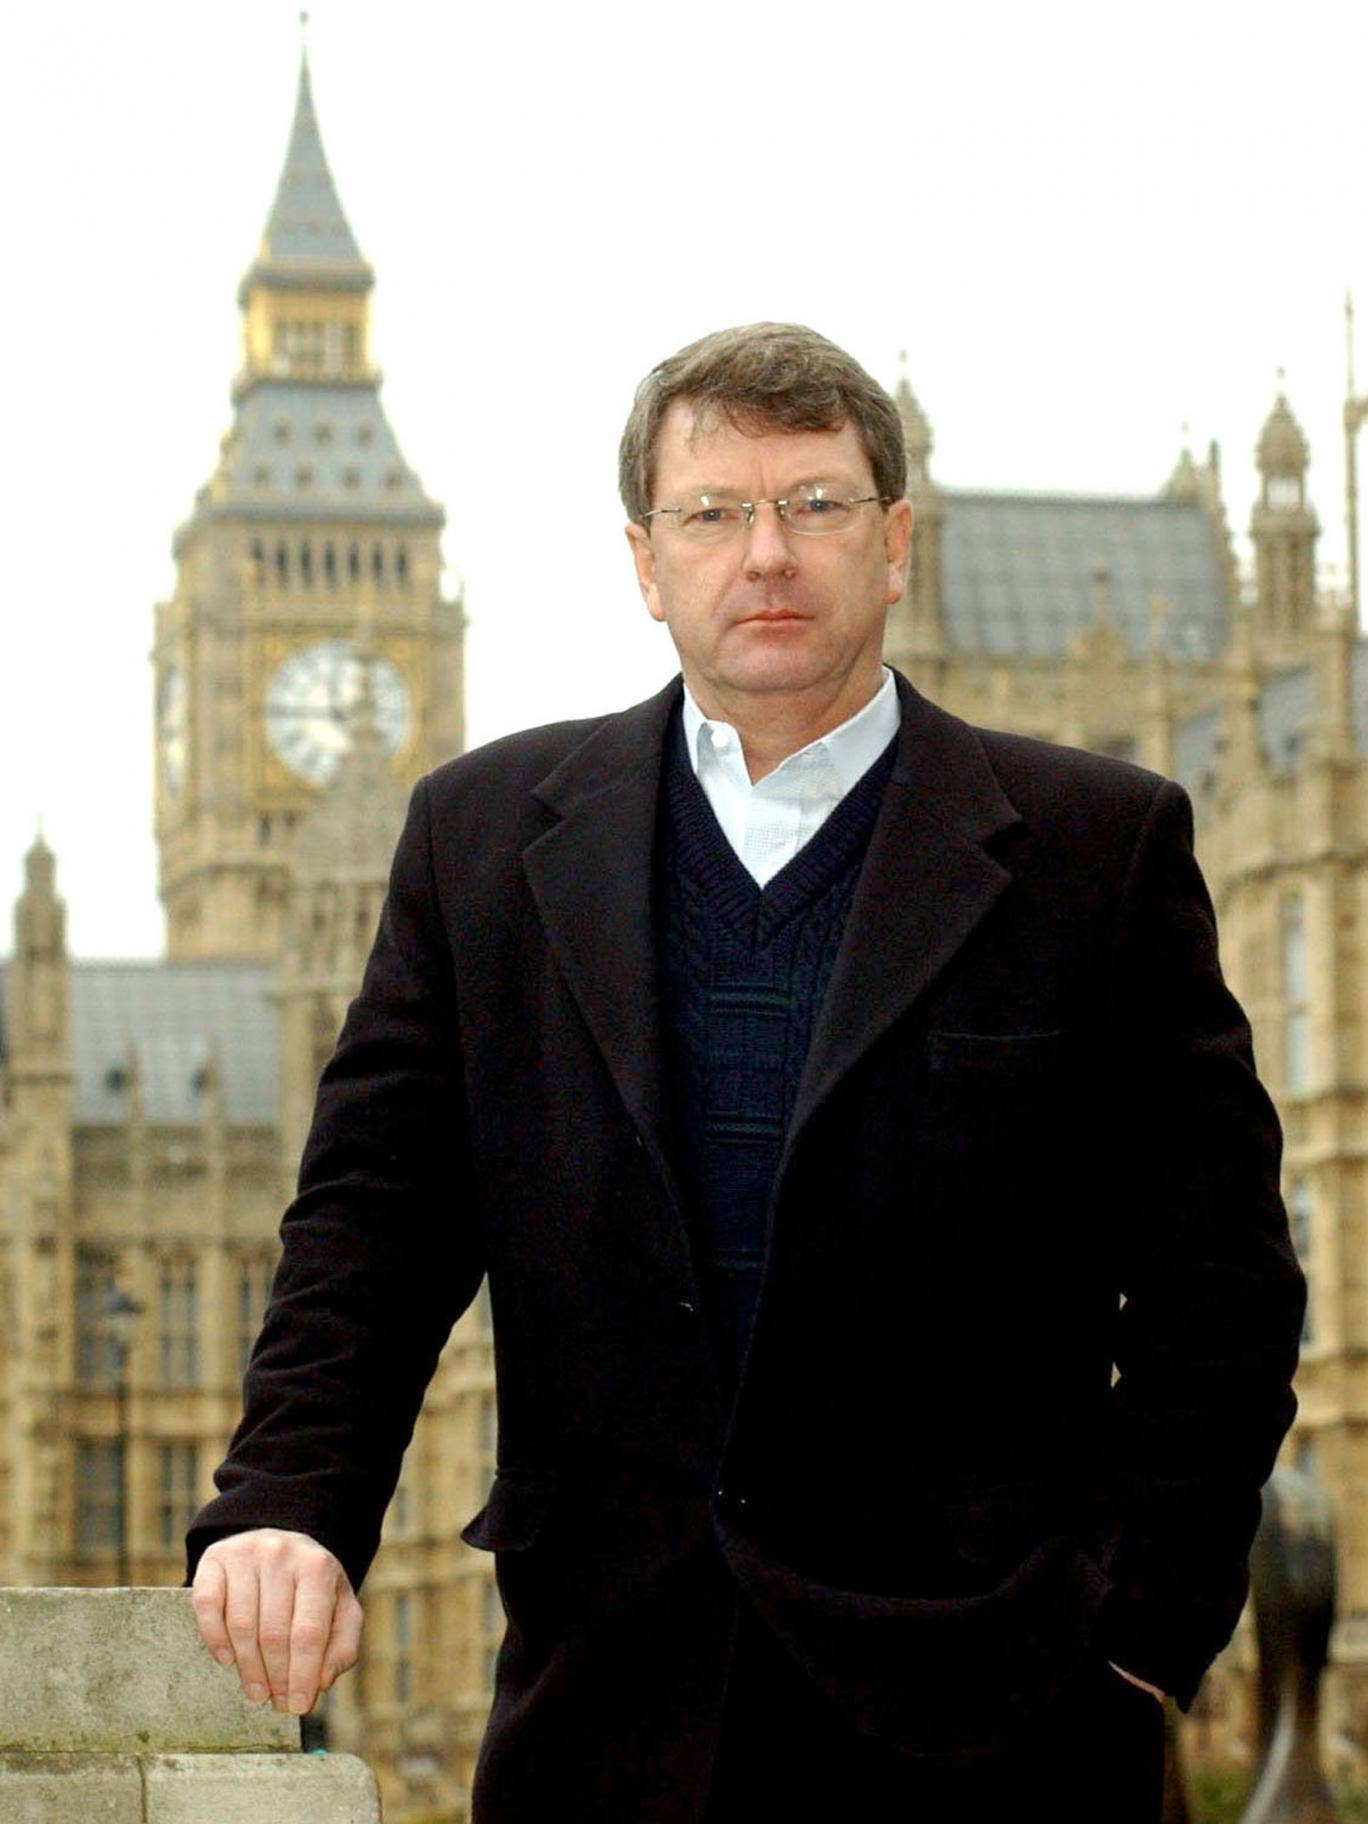 David Cameron has signed up election guru Lynton Crosby to work full time on securing a Tory general election victory in a £500,000 deal